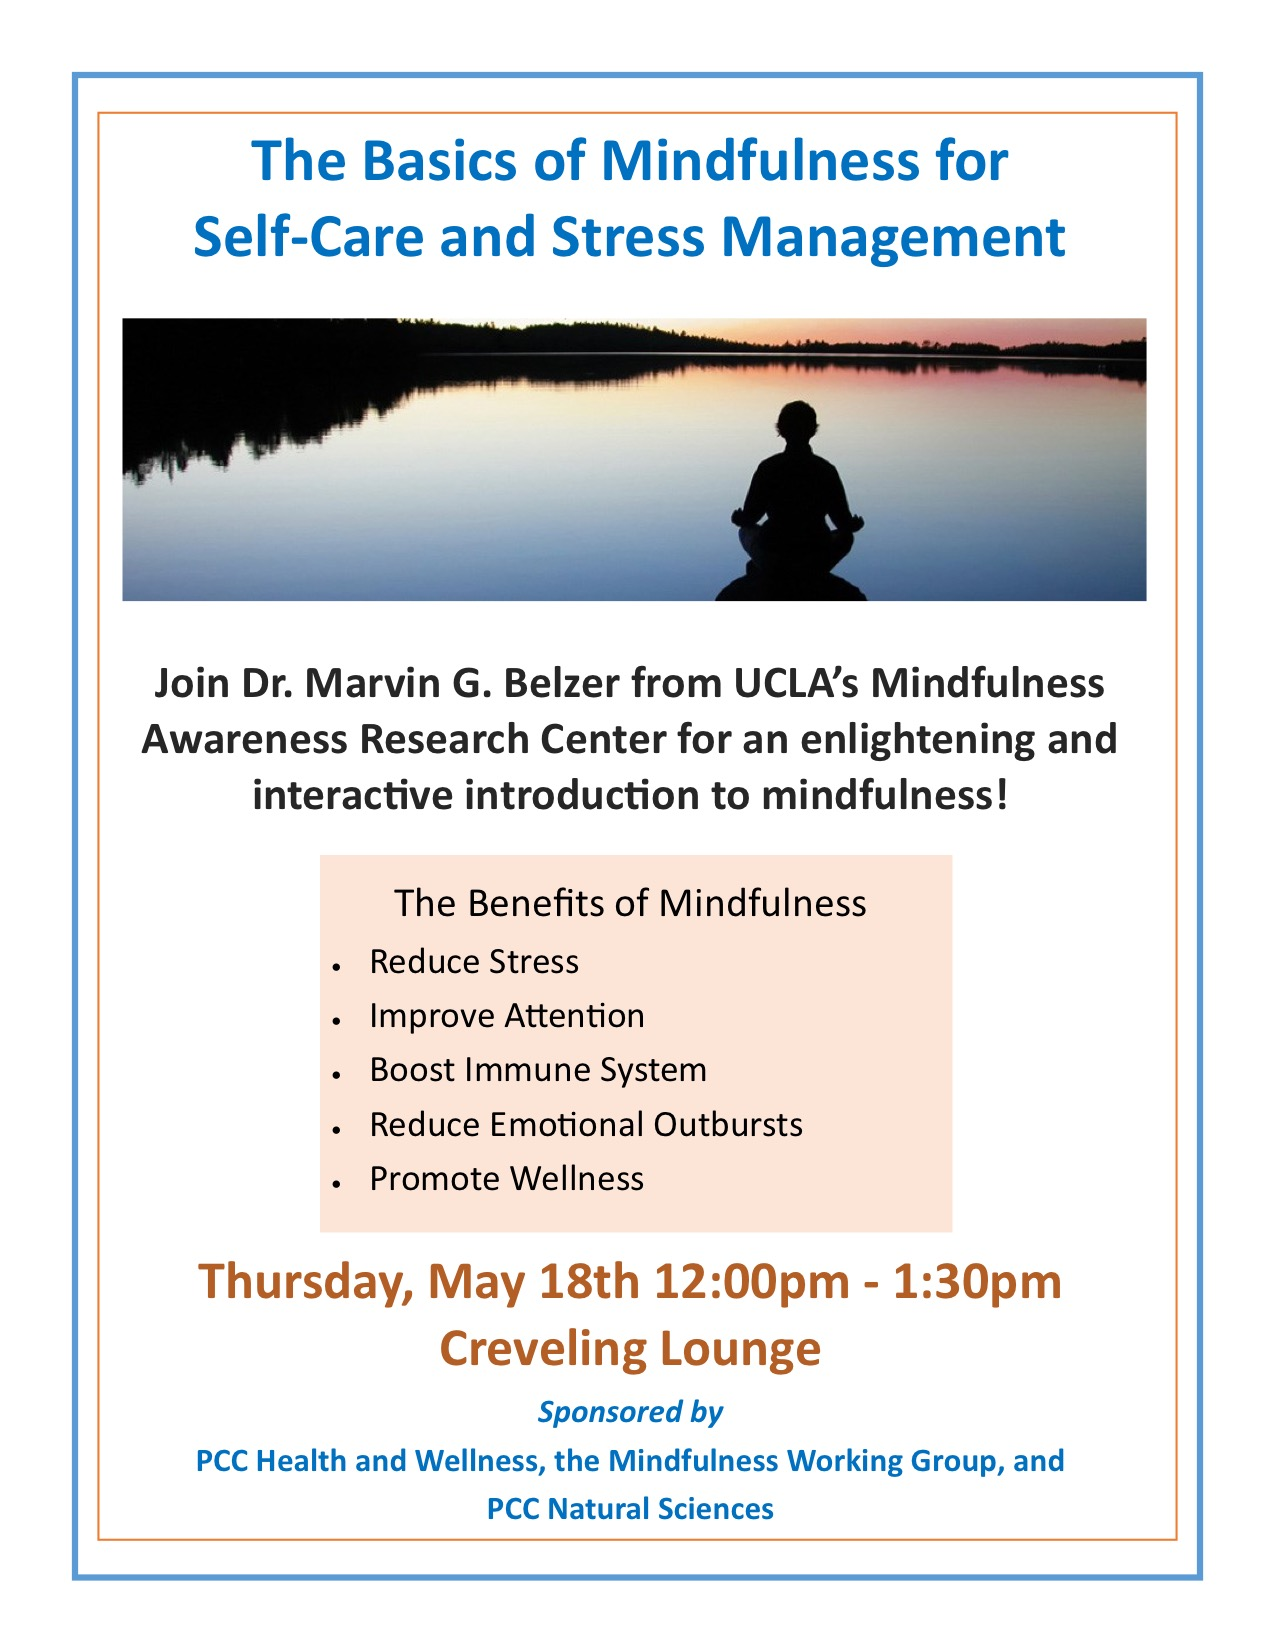 The Basics of Mindfulness for Self-Care and Stress Management Join Dr. Marvin G. Belzer from UCLA's Mindfulness Awareness Research Center for an enlightening and interactive introduction to mindfulness! The Benefits of Mindfulness  Reduce Stress  Improve A en on  Boost Immune System  Reduce Emotional Outbursts  Promote Wellness Thursday, May 18th 12:00pm - 1:30pm Creveling Lounge Sponsored by PCC Health and Wellness, the Mindfulness Working Group, and PCC Natural Sciences